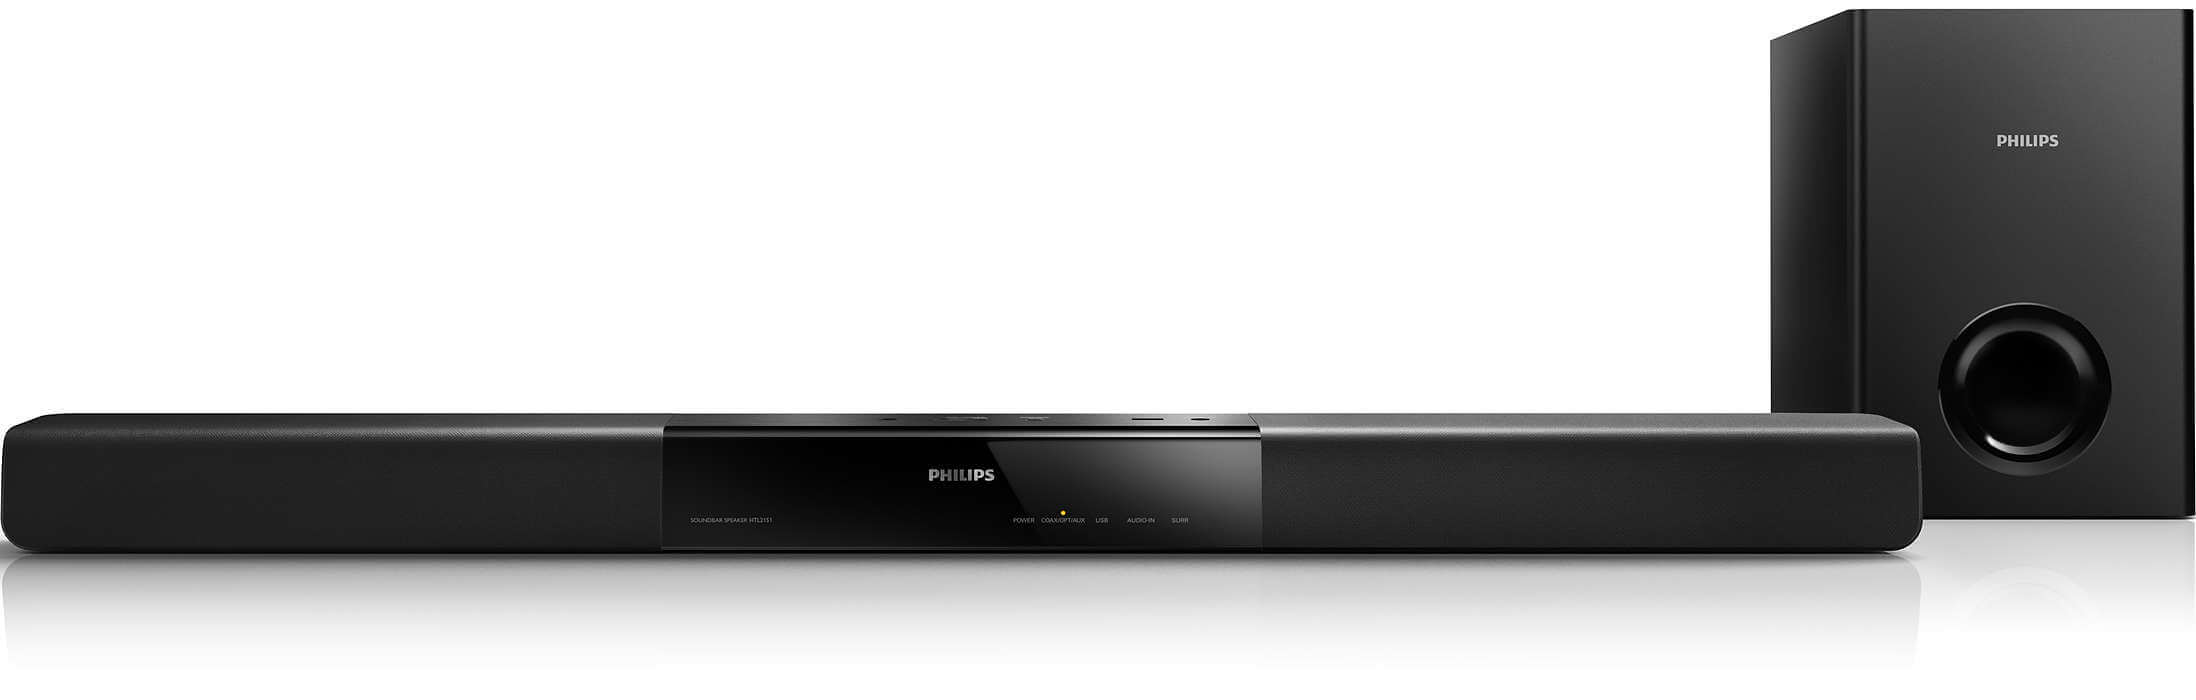 philips-htl2183b